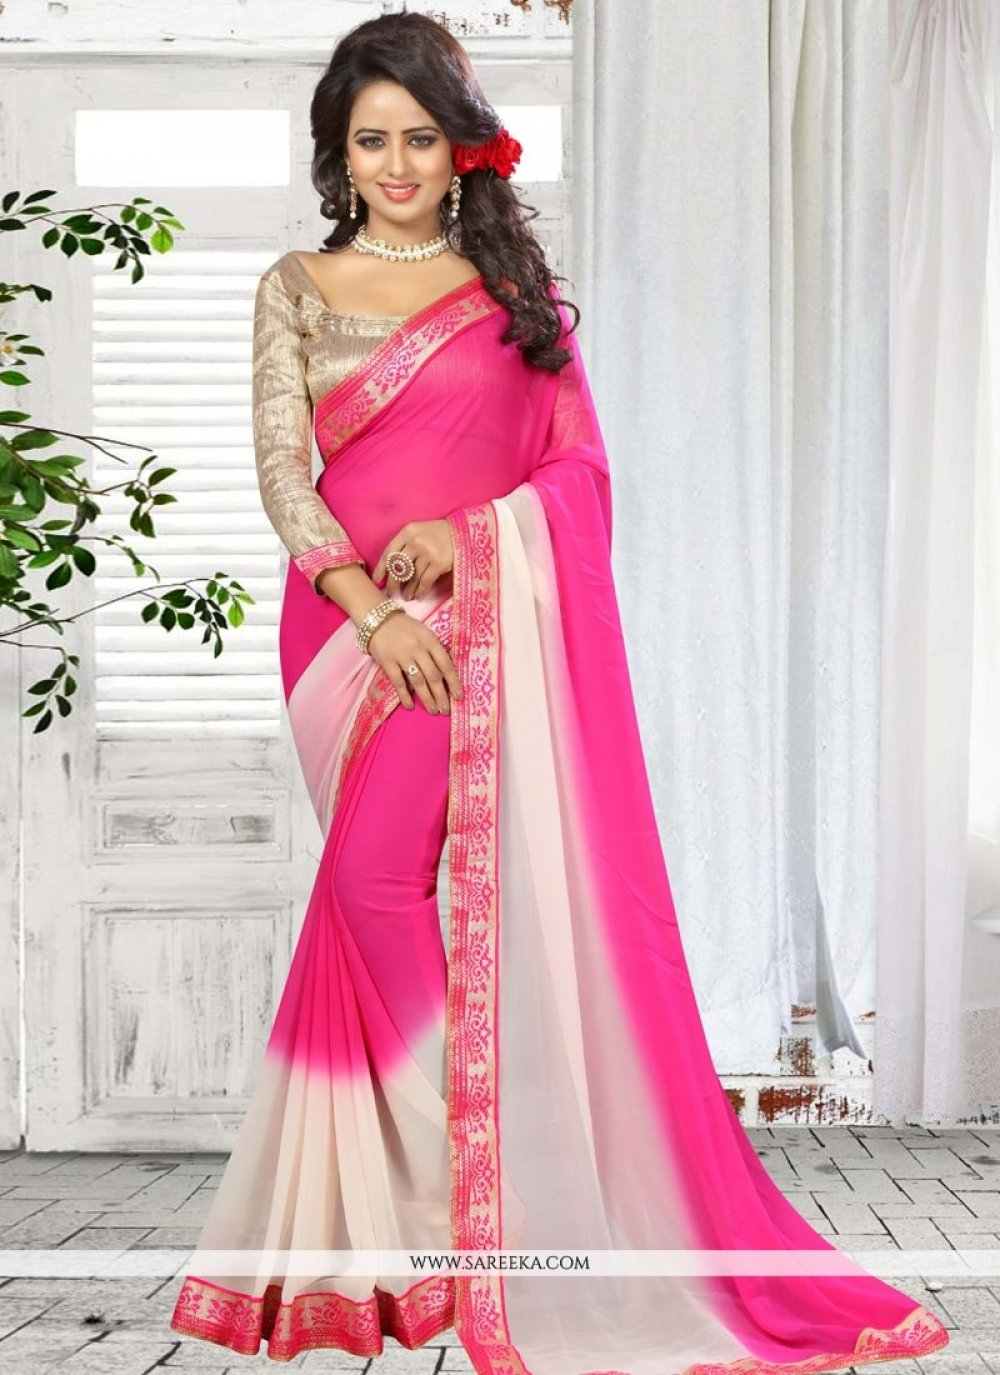 Faux Georgette Hot Pink Shaded Saree